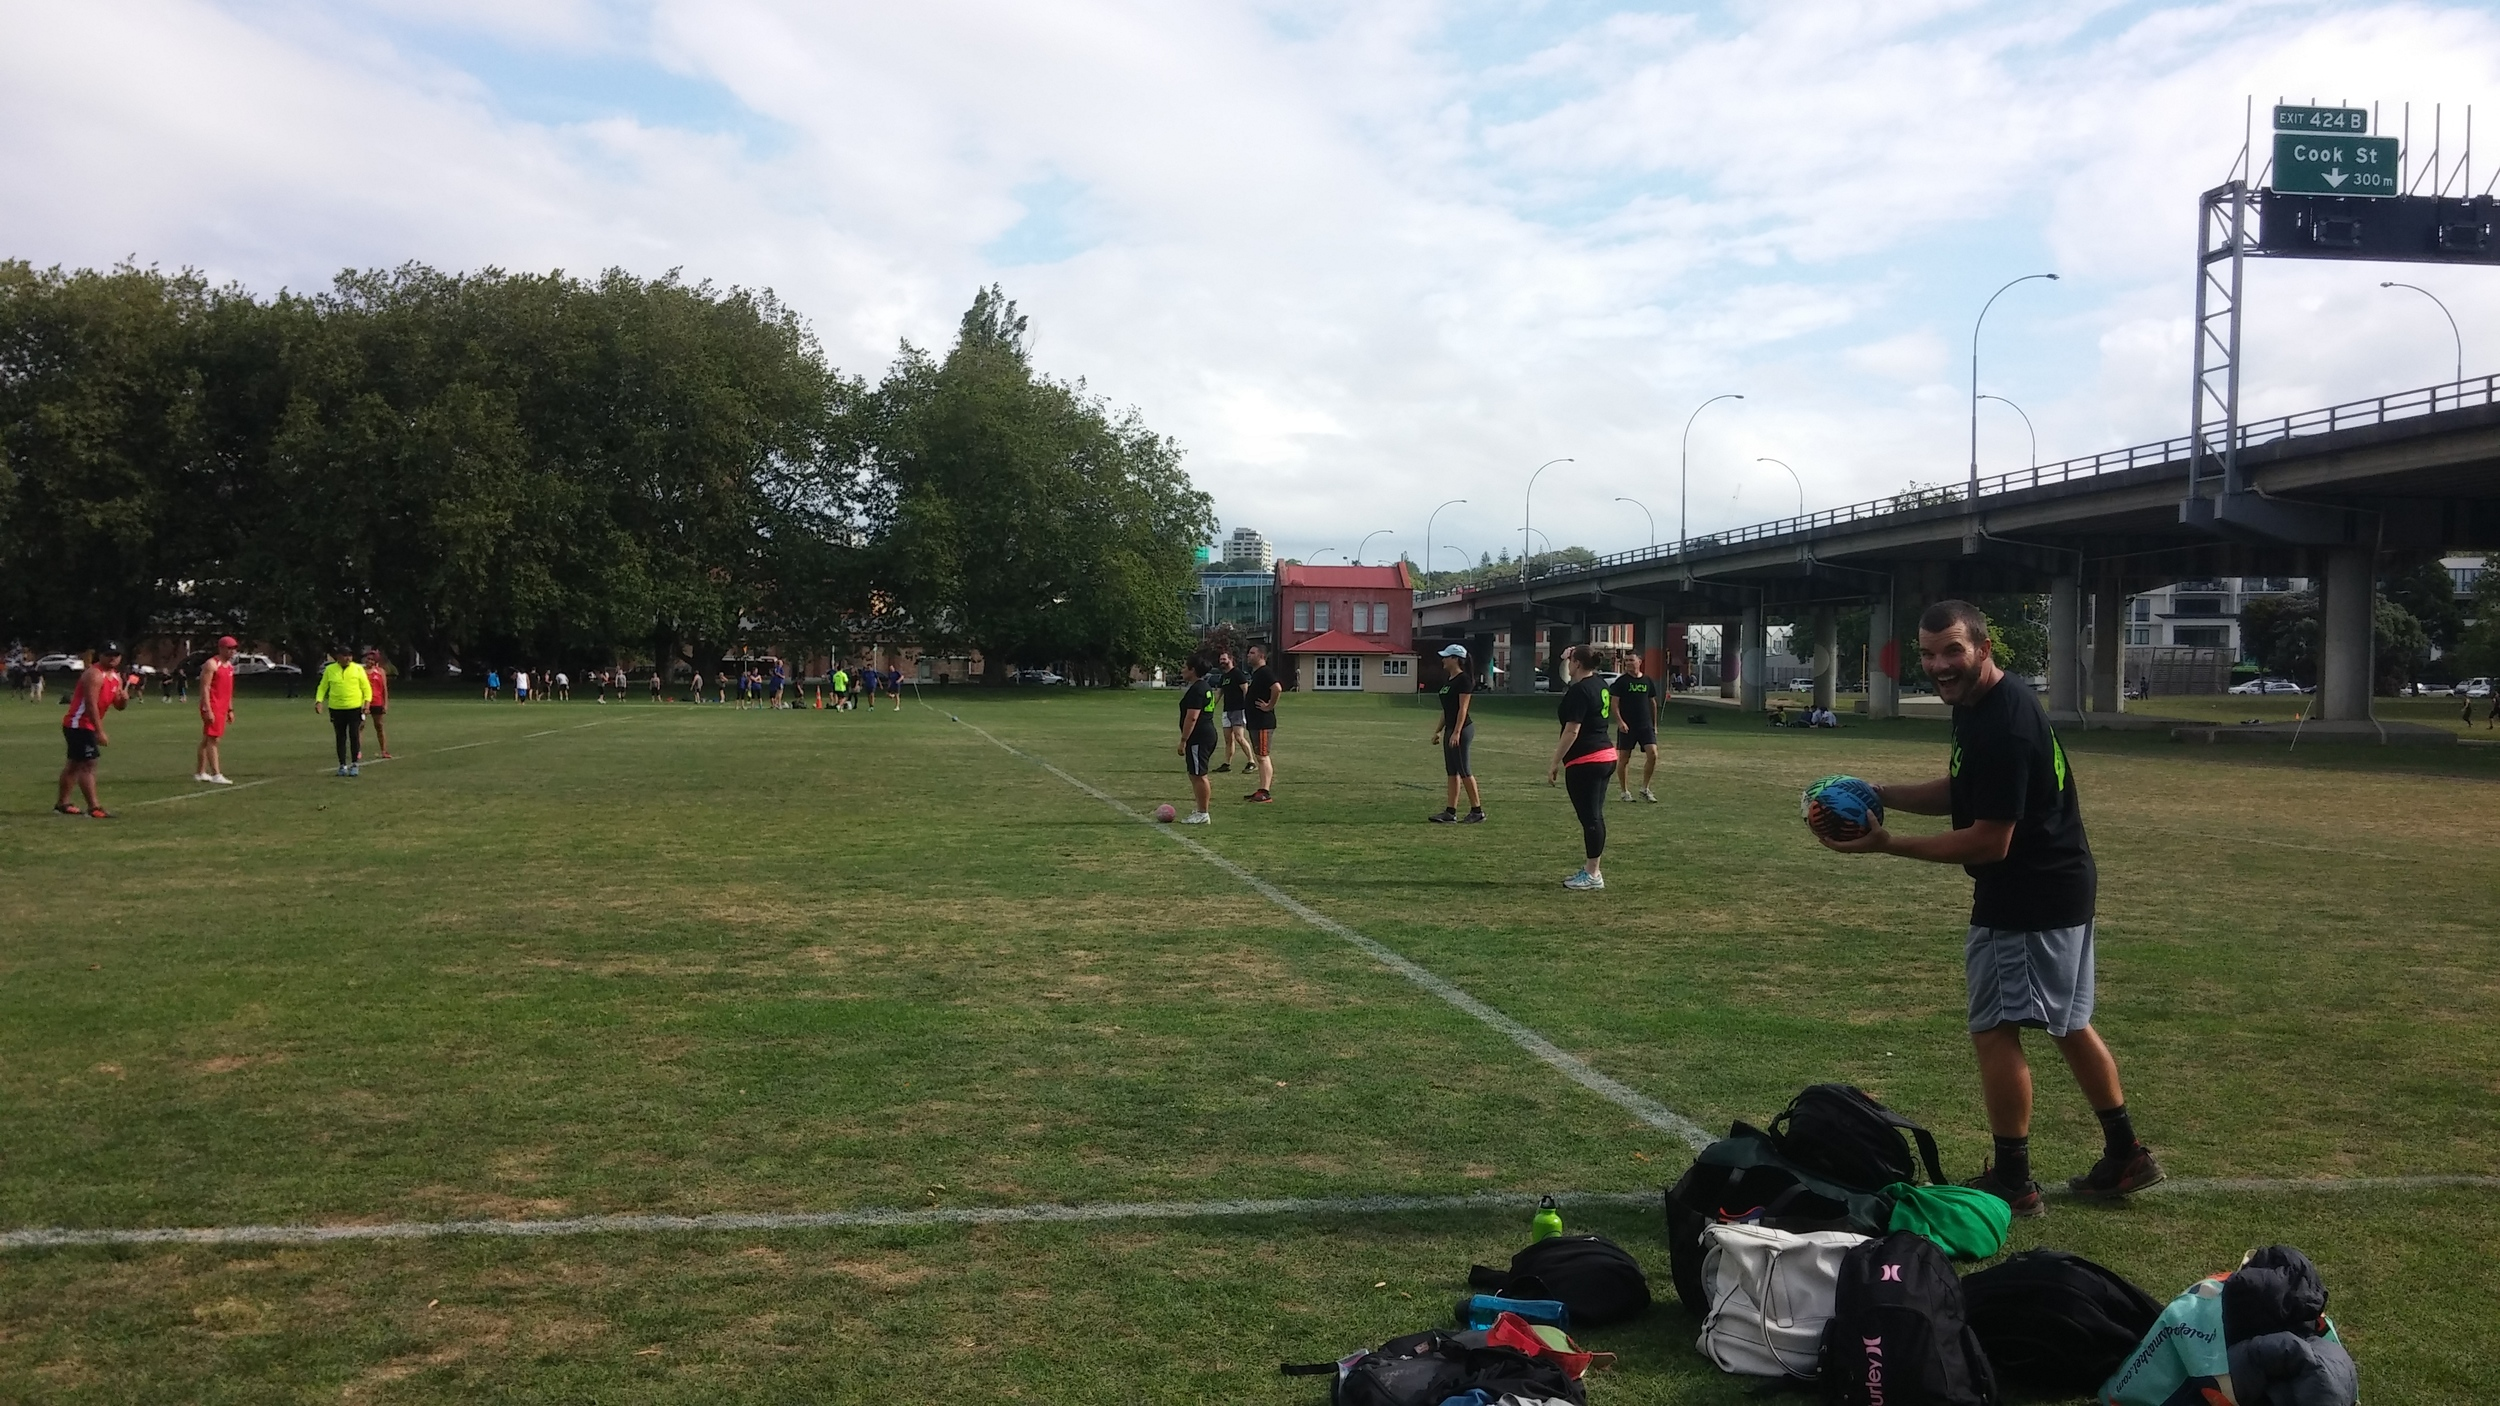 Playing our first match of touch rugby between seeing campervans.